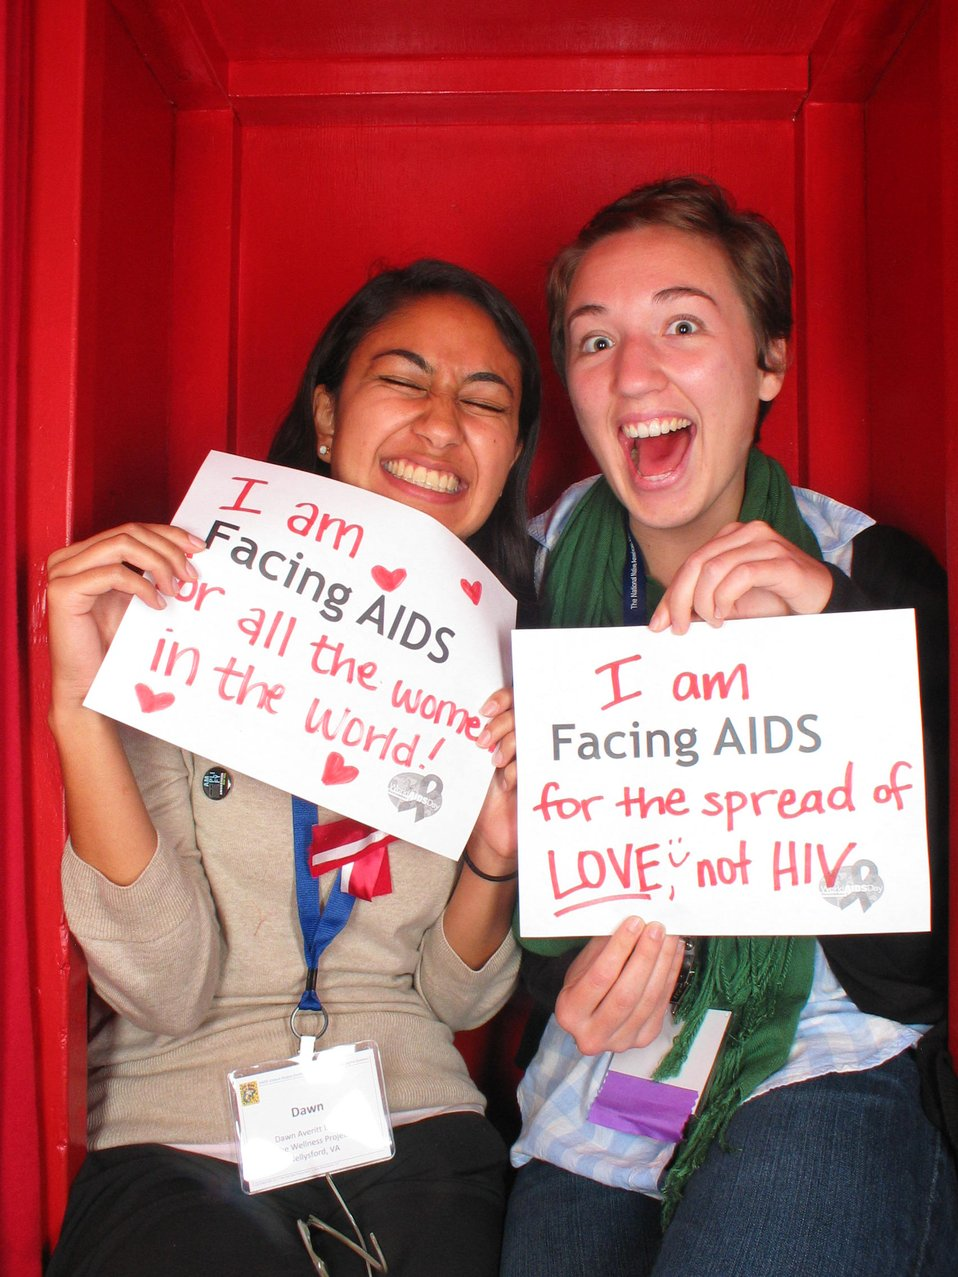 I am Facing AIDS for all the women in the world! I am Facing AIDS for the spread of LOVE not HIV